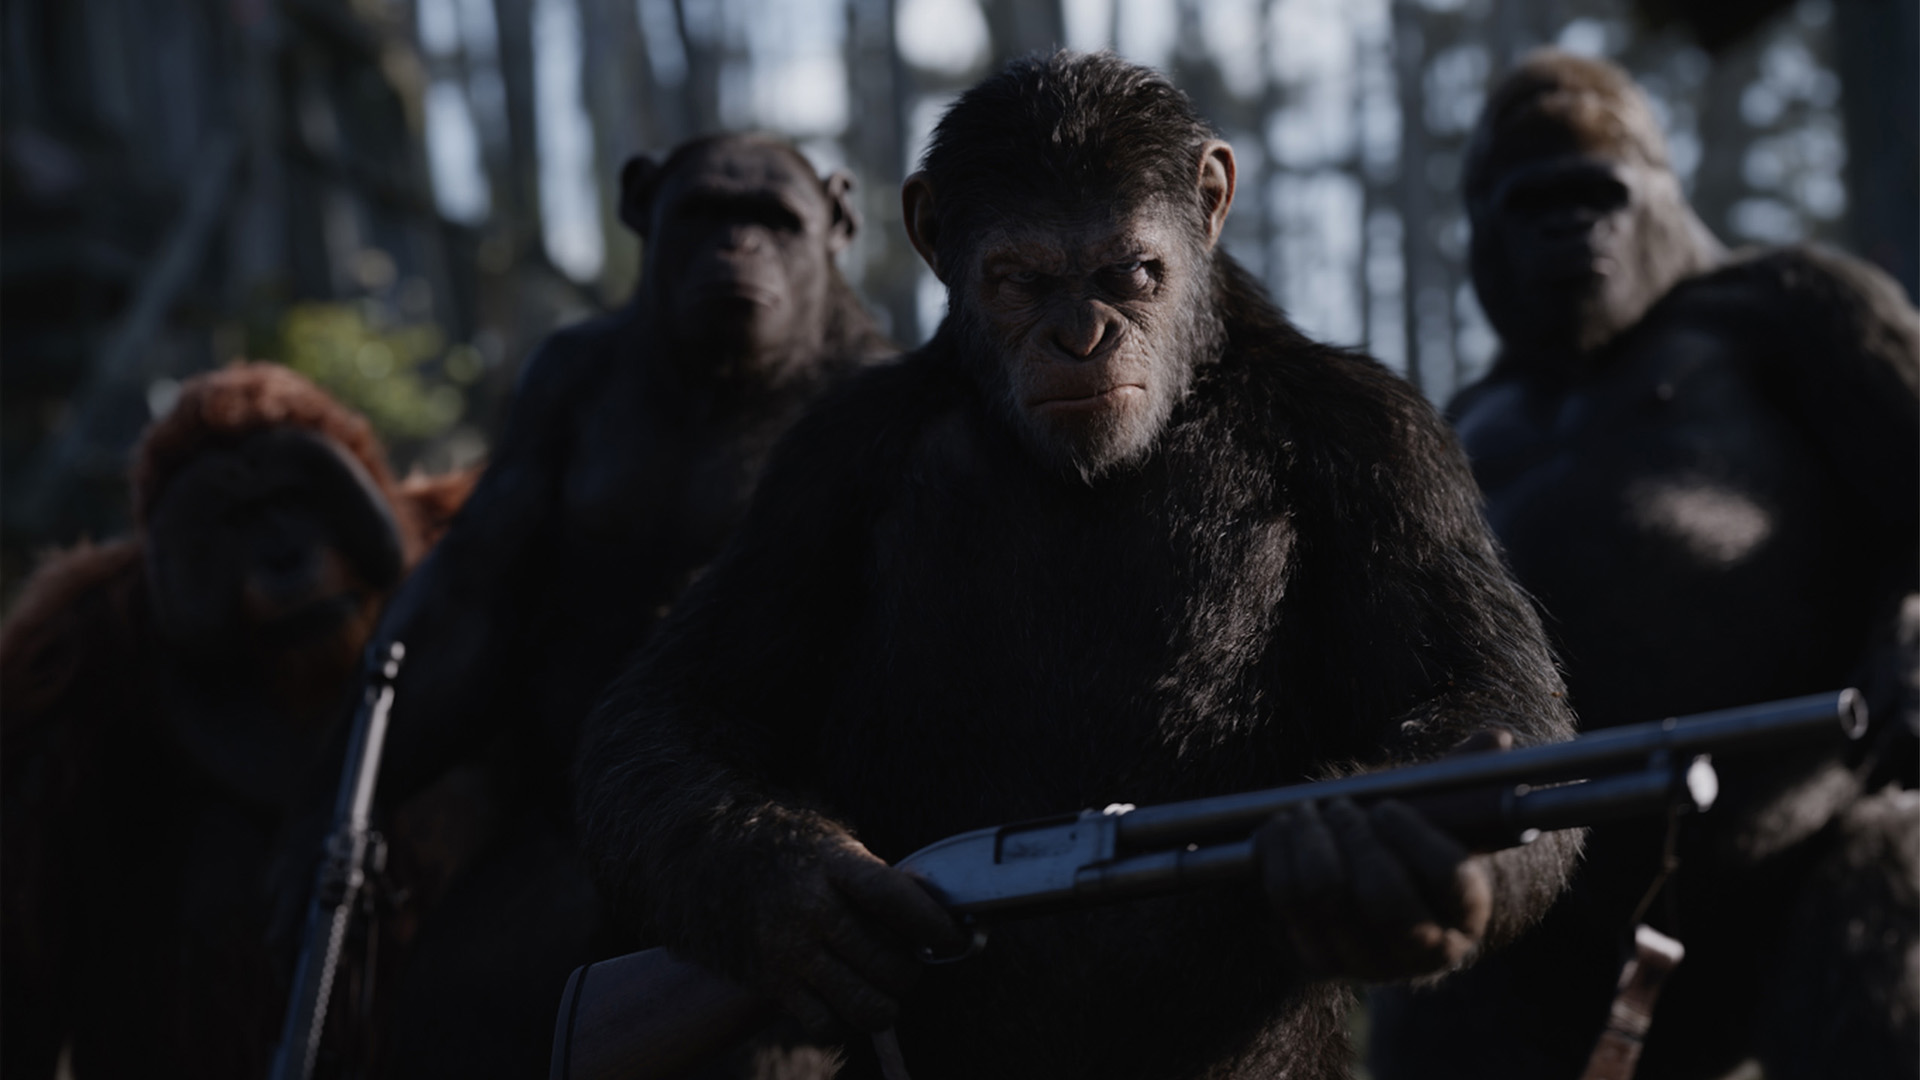 Movie Watch: Amarillo film options for July 13 to 20, plus reviews of 'Spider-Man,' 'Apes'